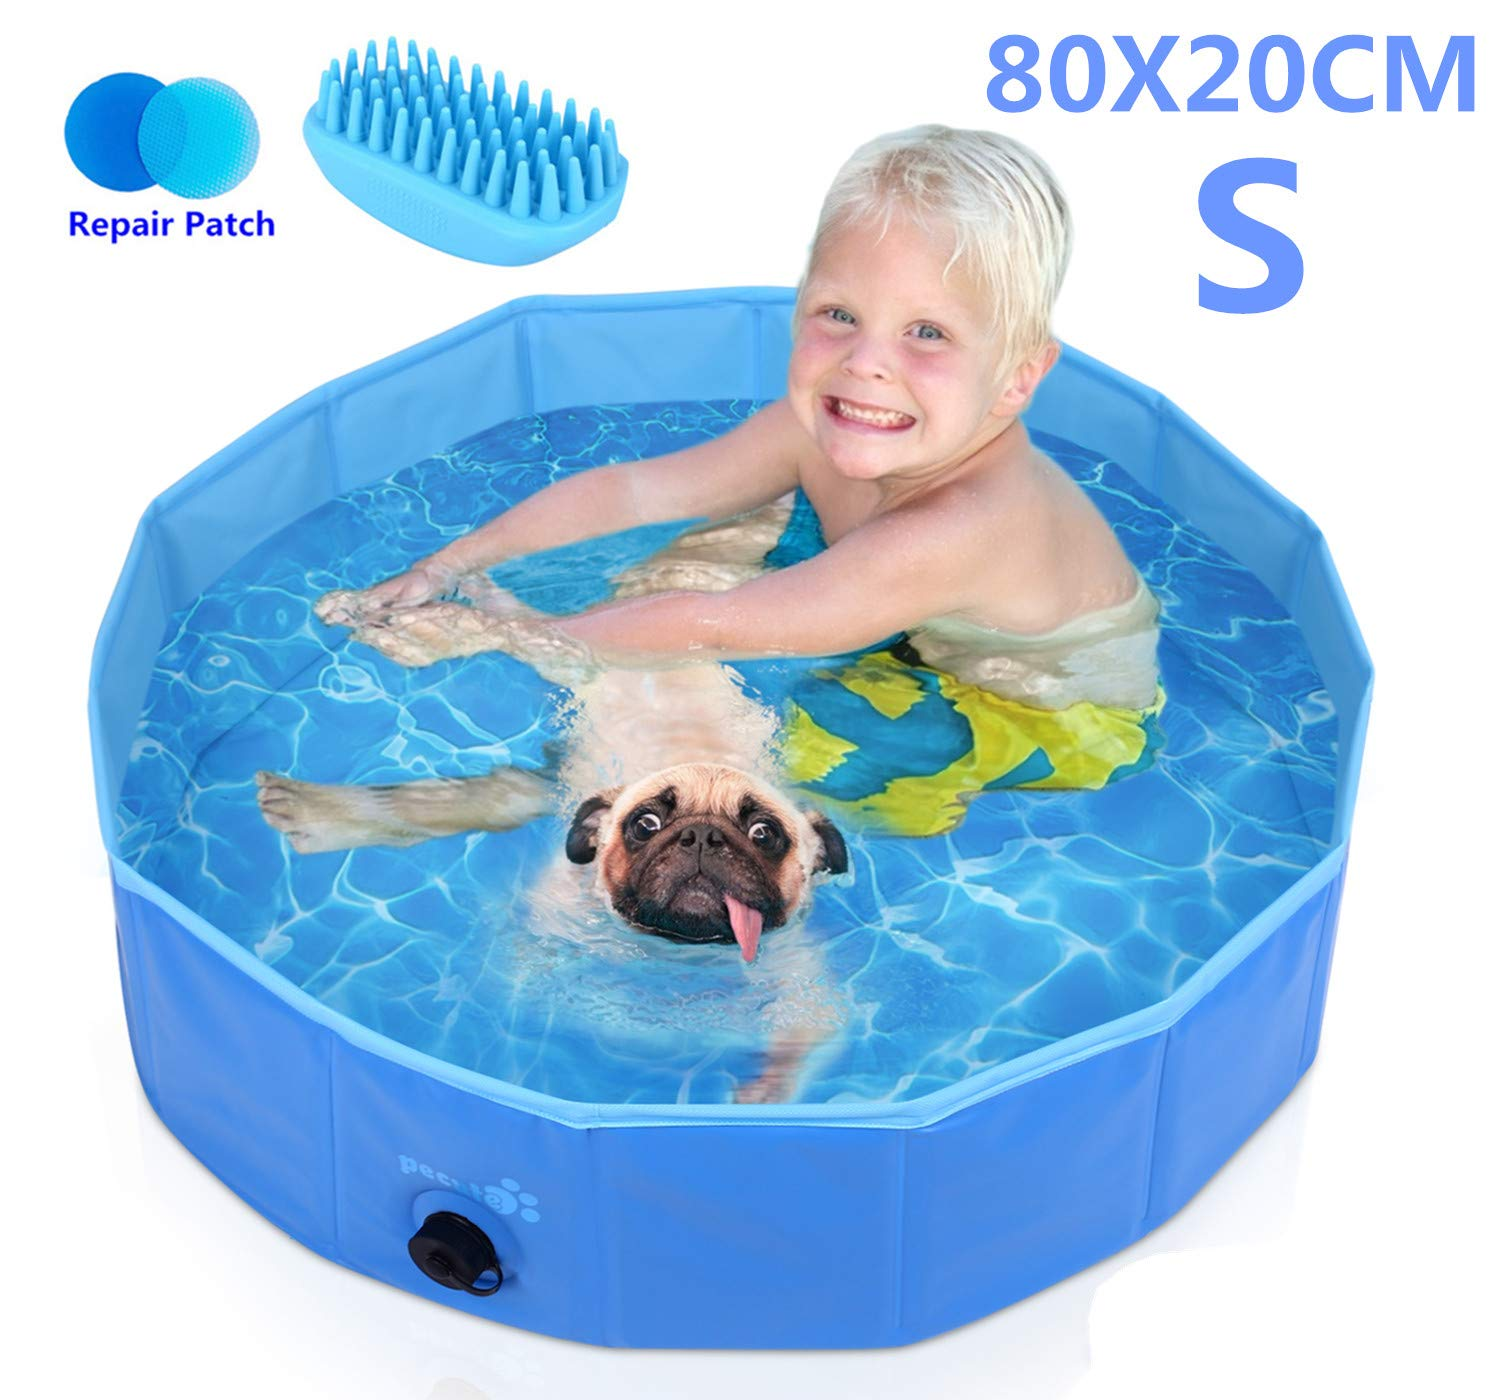 Best Dog Pool!!